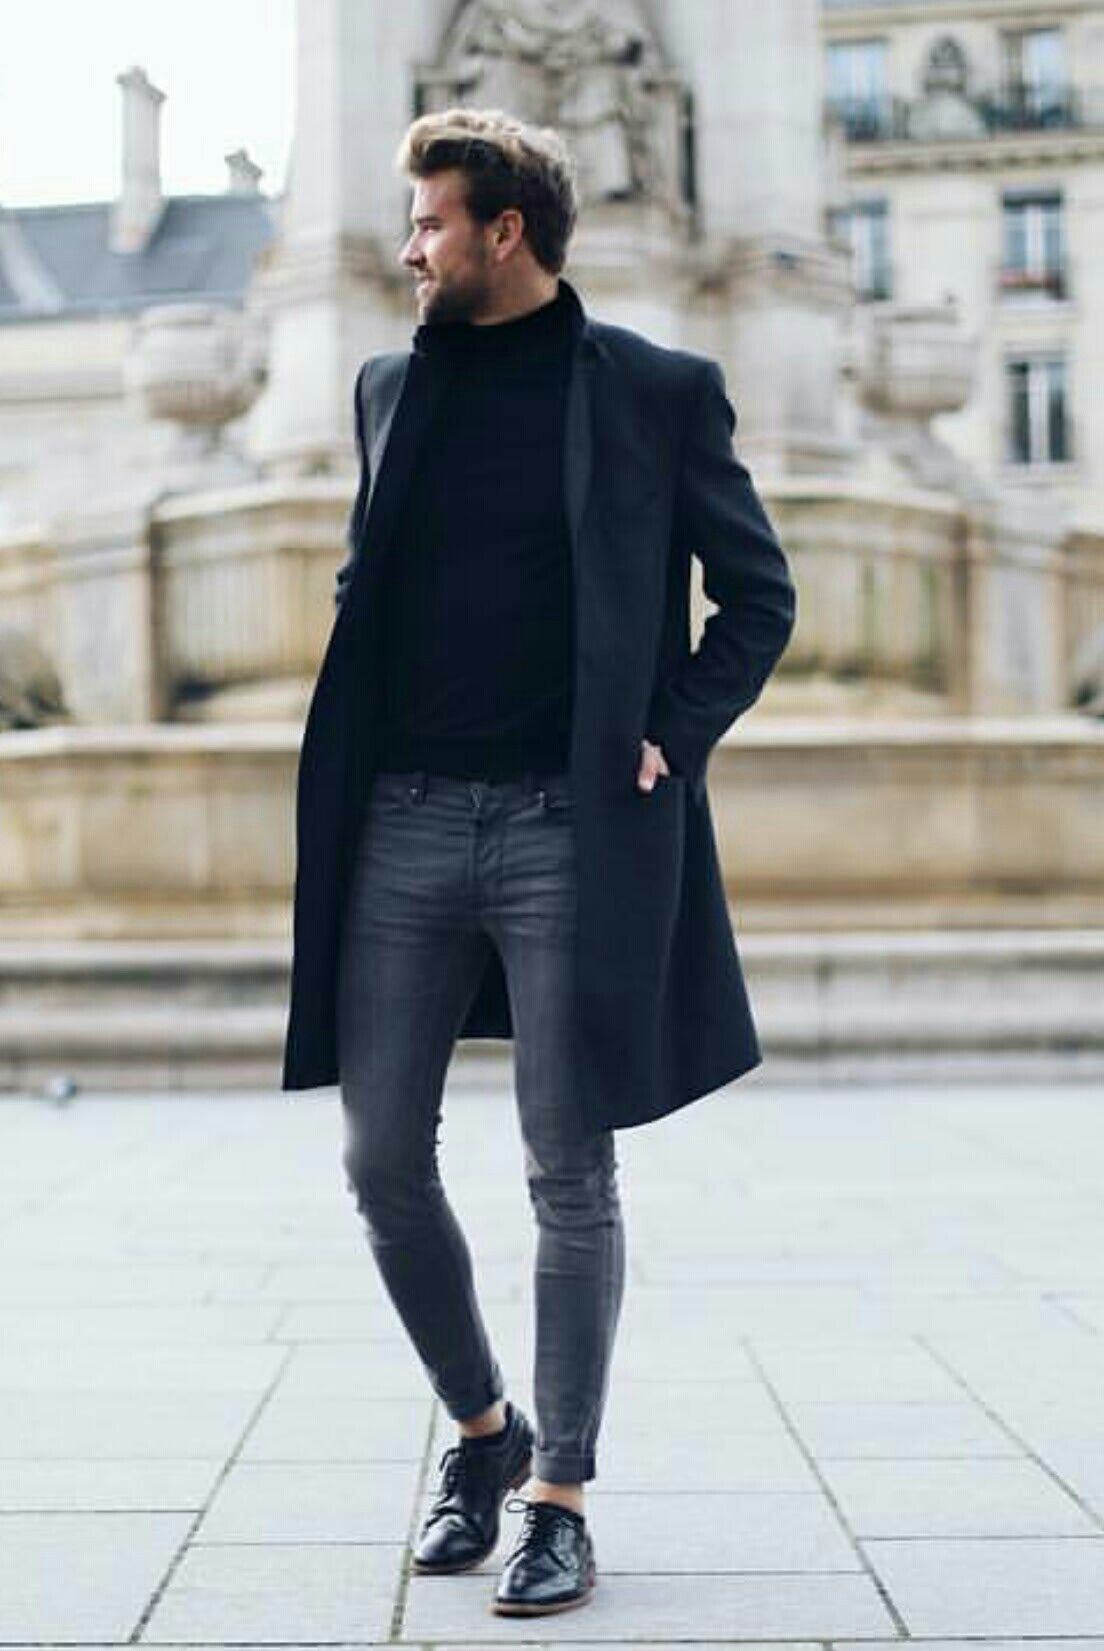 Men 39 S Street Style Ideas Of The Day Part 1 Man Style Man Outfit And Men 39 S Fashion